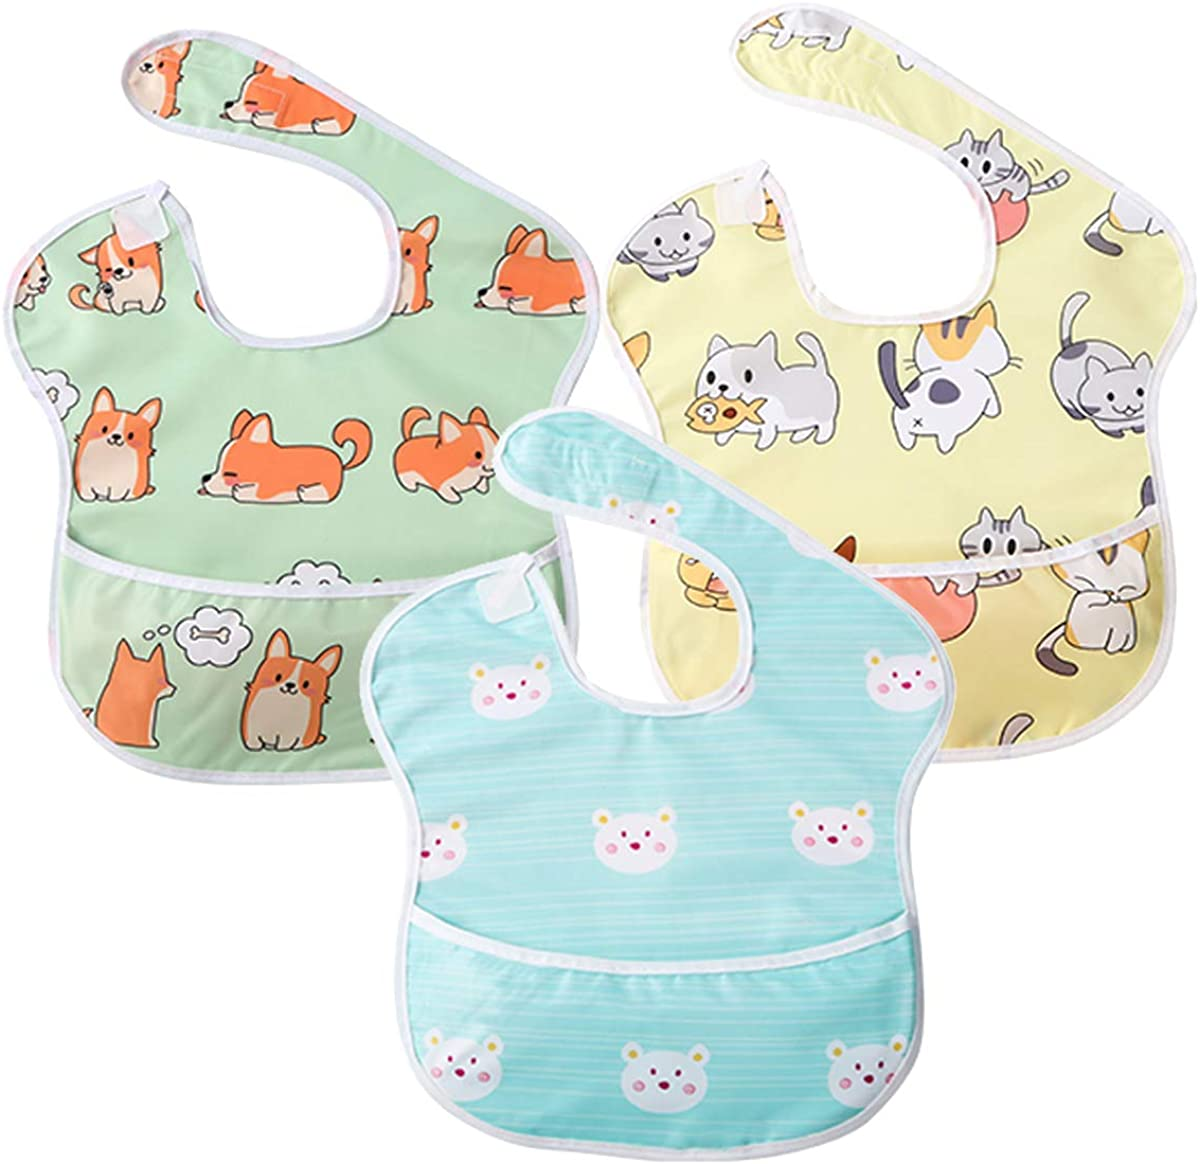 Waterproof Feeding Bibs for Baby Boy Toddlers with Pocket,3 PCS (6-36 Months)